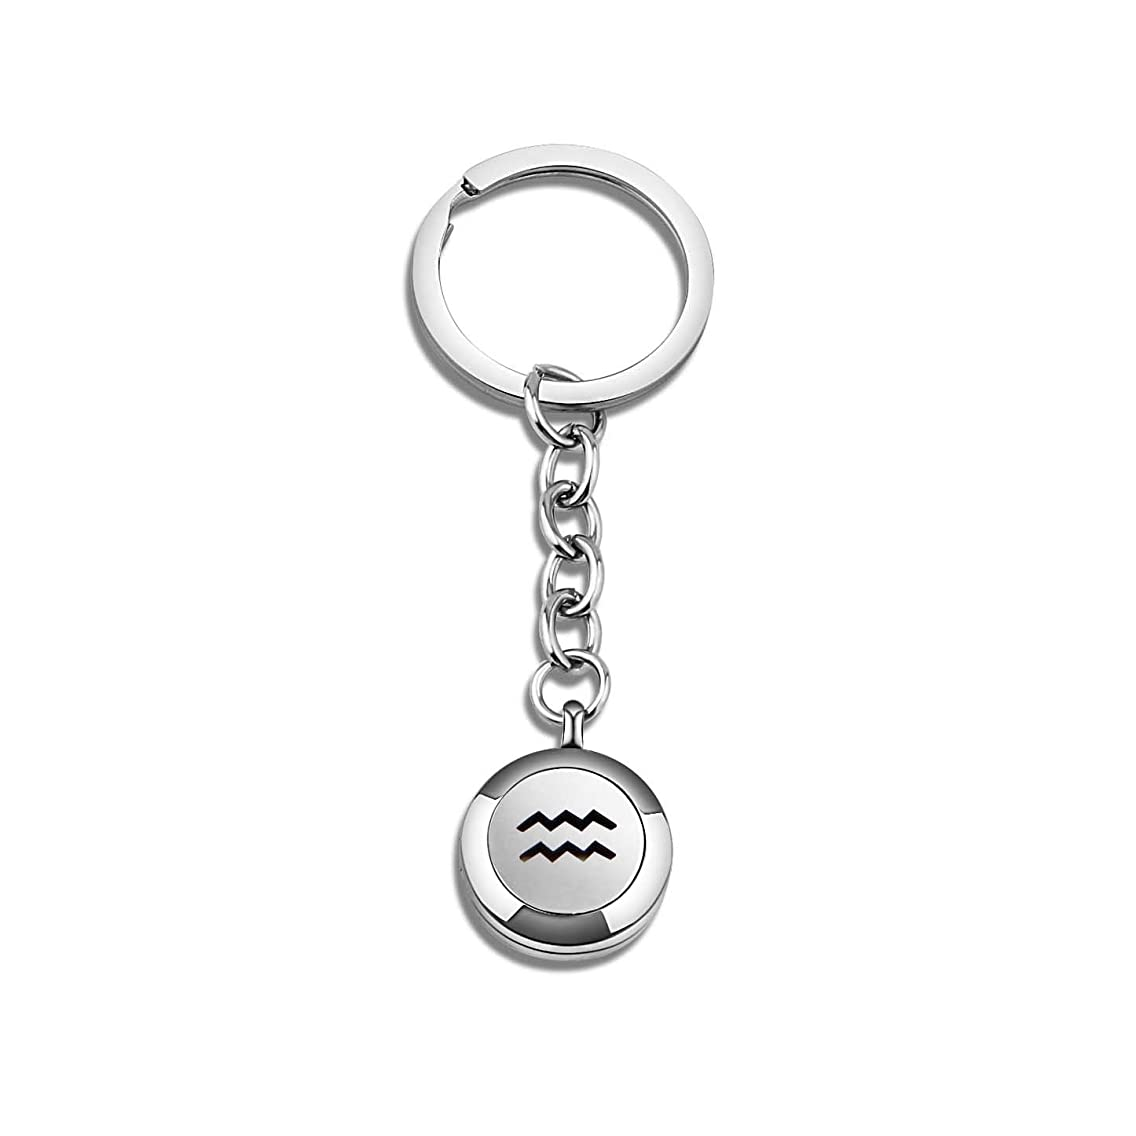 BNQL Zodiac Essential Oil Diffuser Keychain Birthday Gift for Her